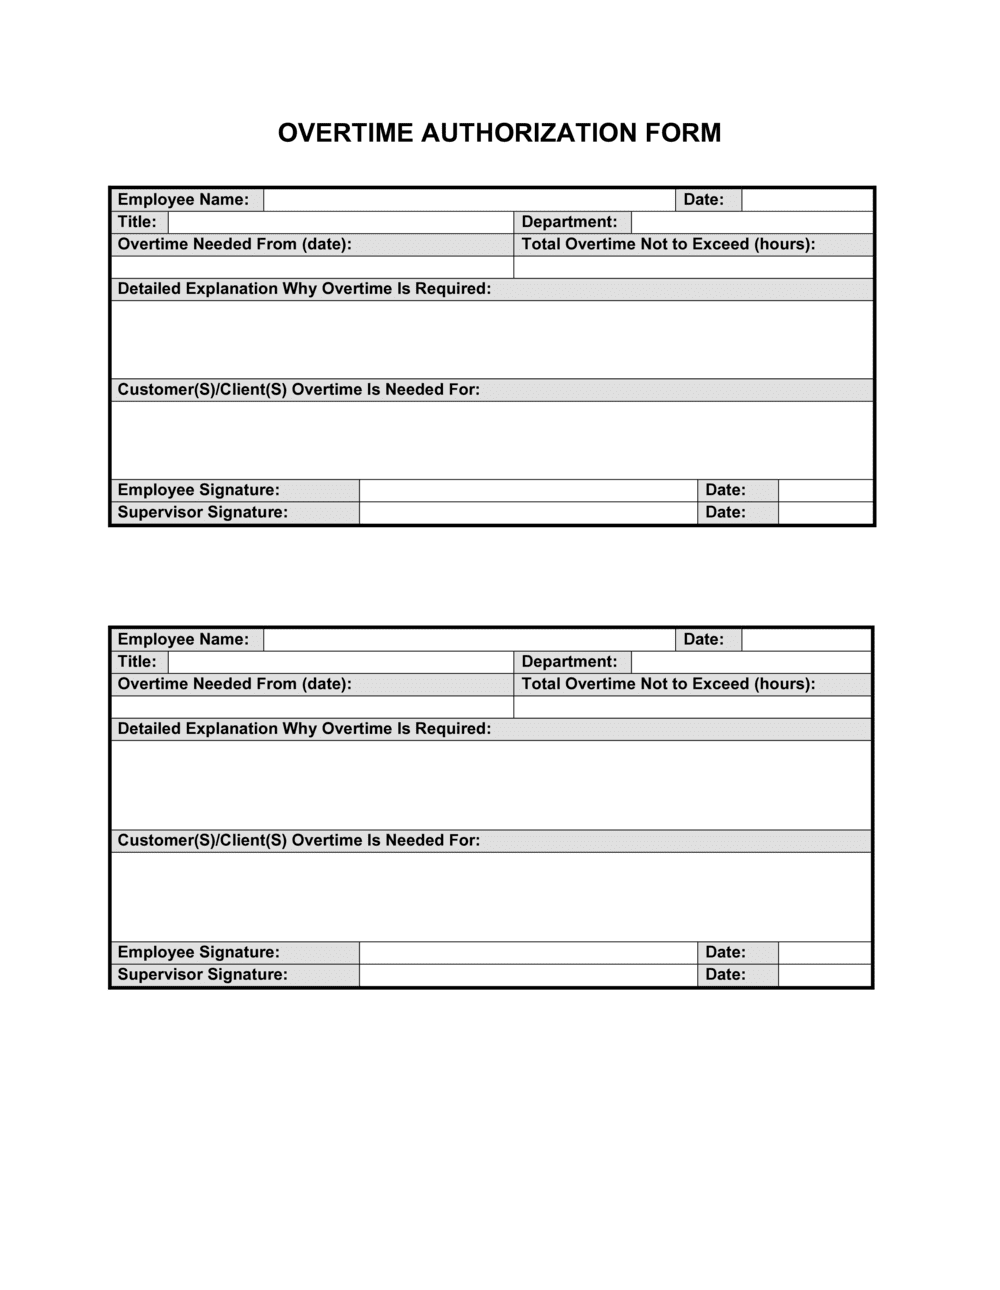 Business-in-a-Box's Overtime Authorization Form Template